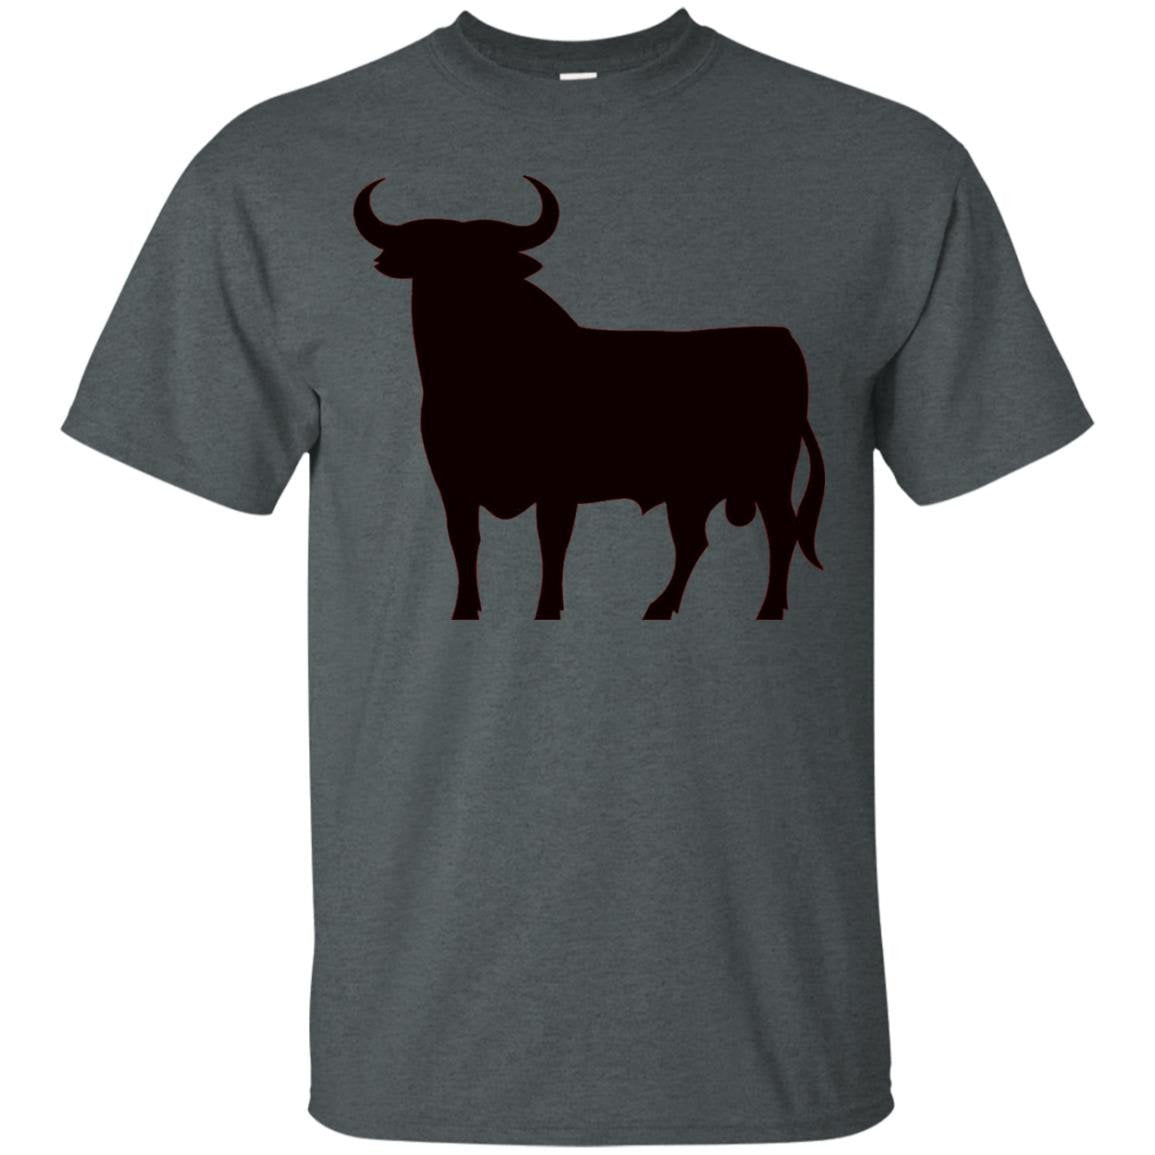 EL TORO DE OSBORNE - spain - spanish - bull - icon T-shirt - T-Shirt